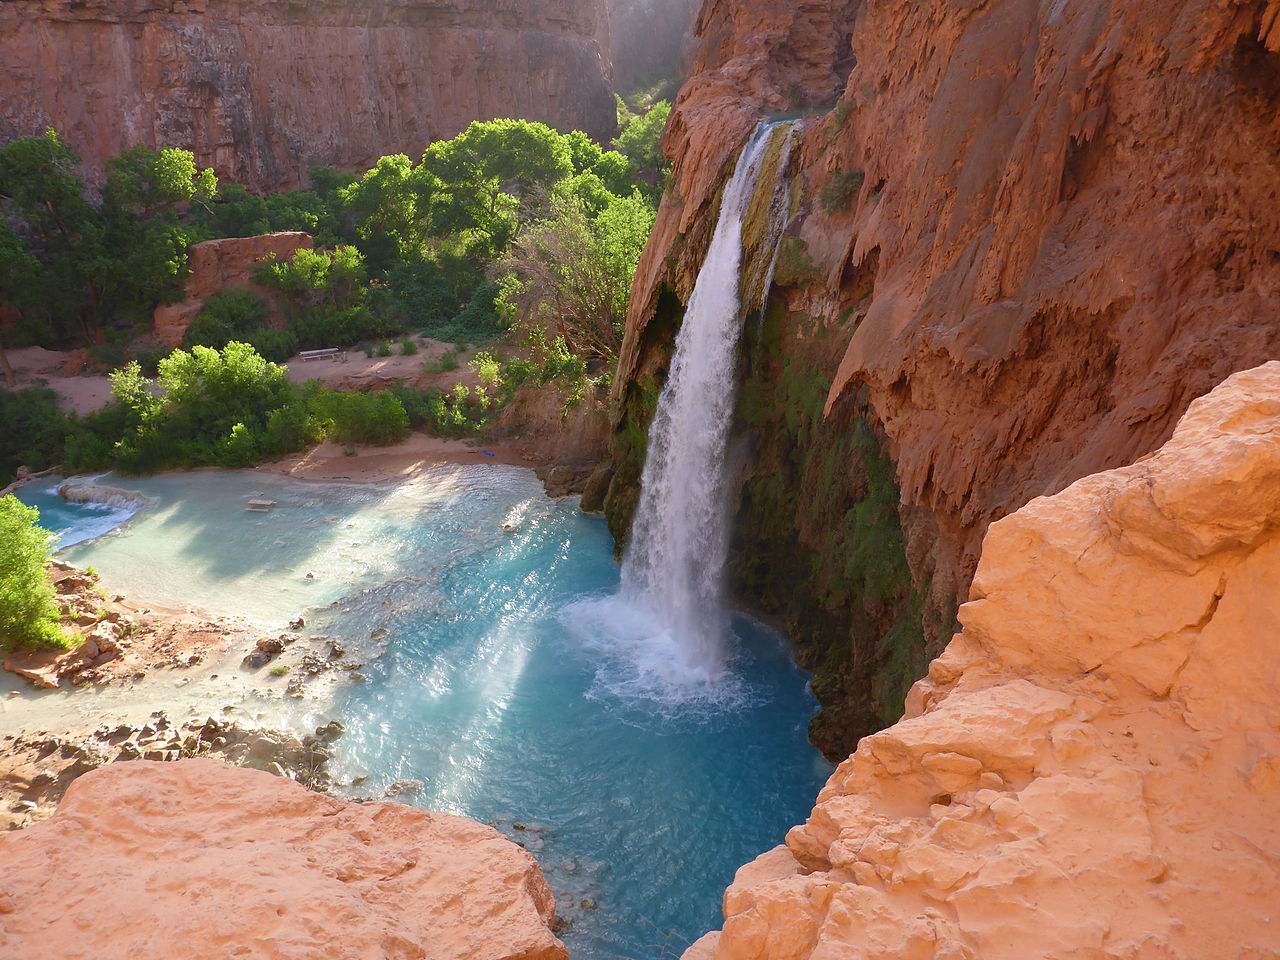 Visit The Majestic Havasu Falls: Activities To Do In And Around Havasu Falls and Places to Stay